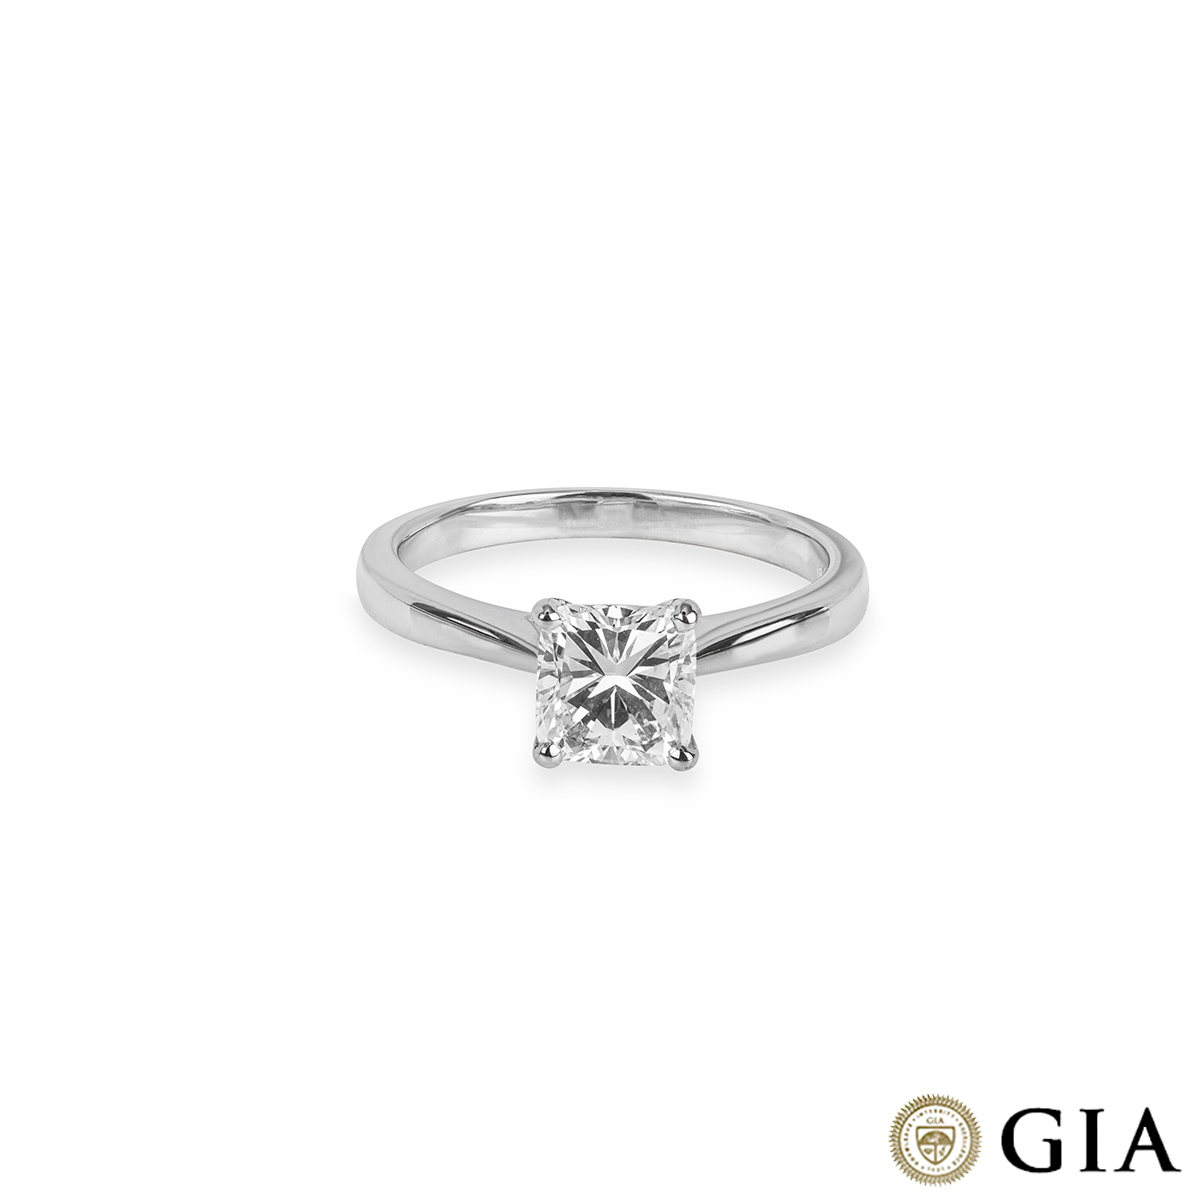 White Gold Cushion Cut Diamond Ring 1.14ct G/VS1